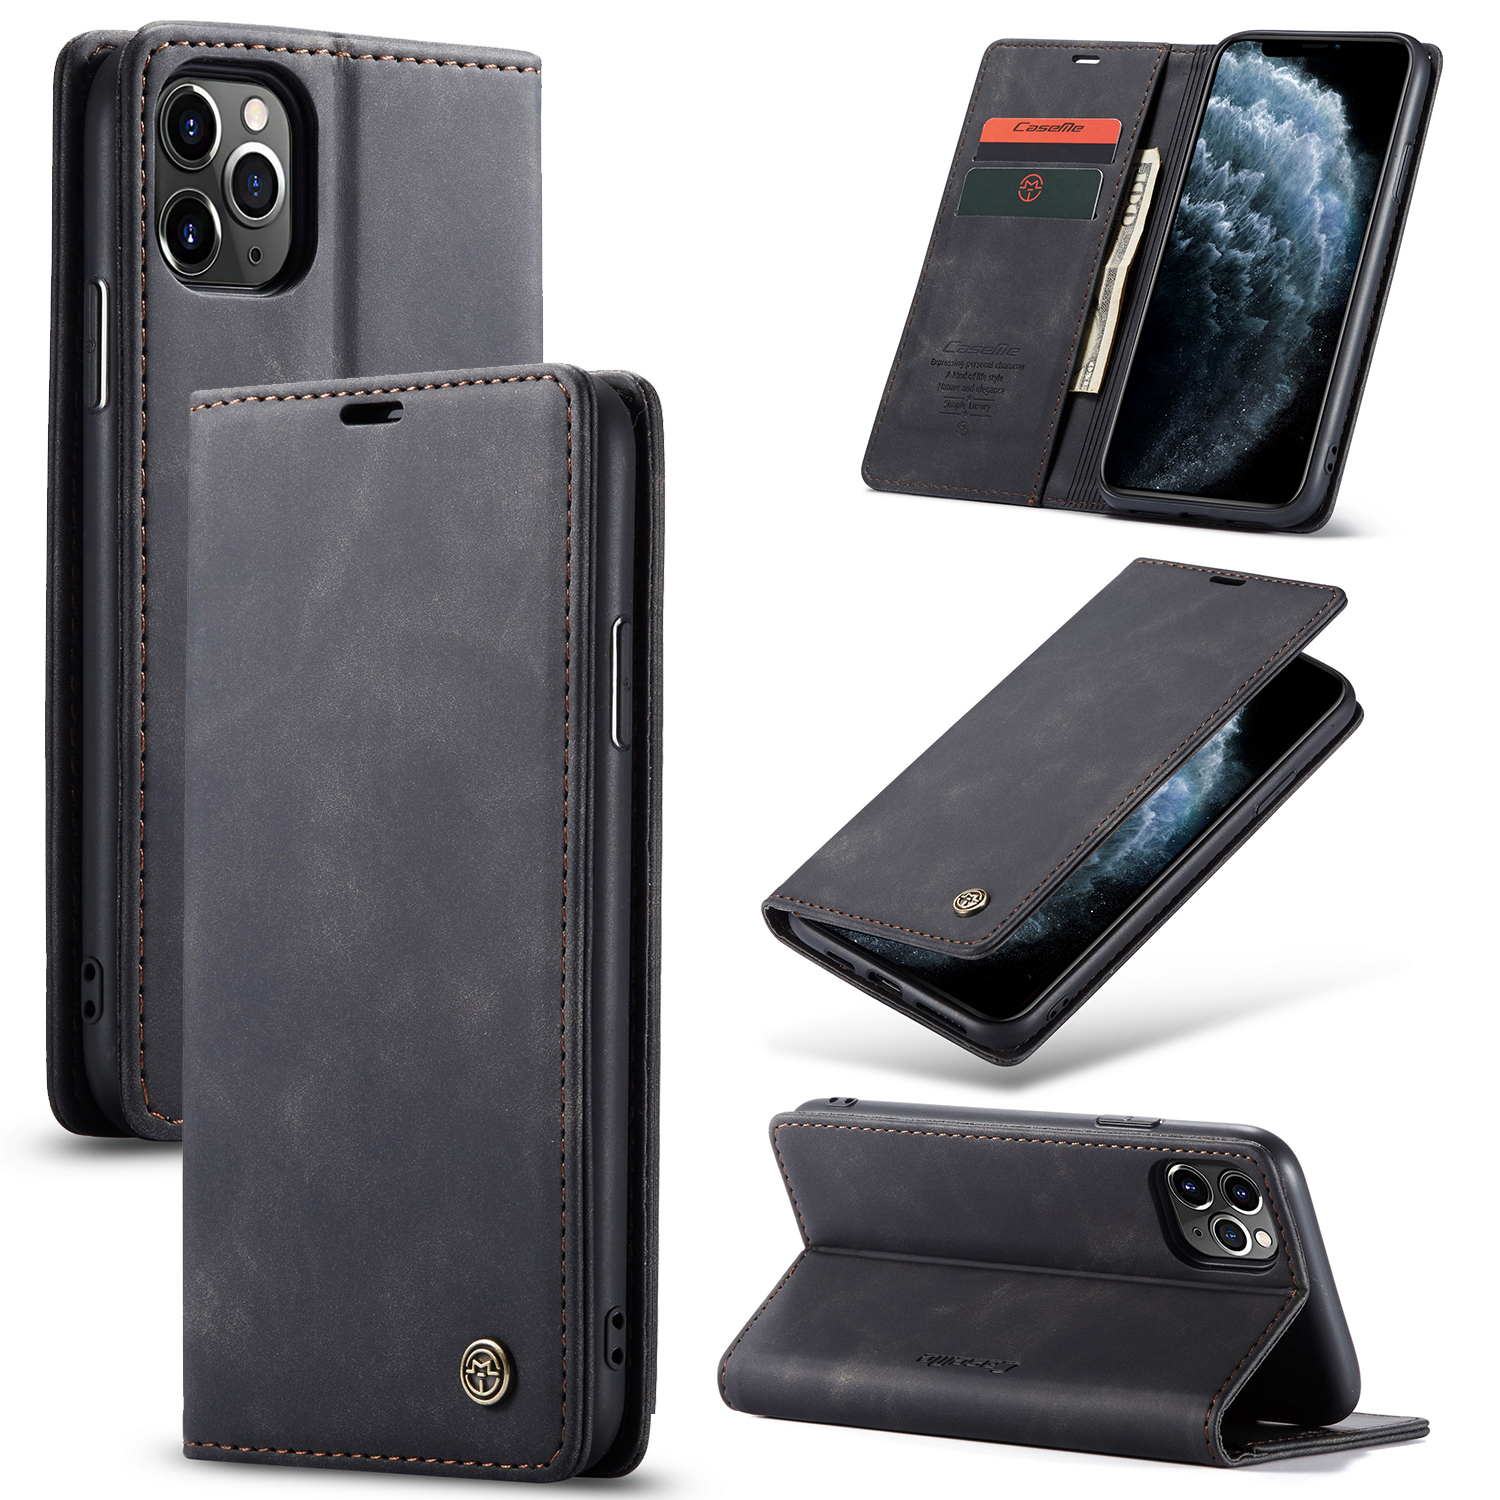 2 in <font><b>1</b></font> Phone Case For <font><b>iPhone</b></font> 6S 6 7 8 <font><b>5</b></font> 5S SE 11 X XS XR Pro Max Plus 2020 Luxury Leather Case Card Slot Wallet Flip Stand Cover image